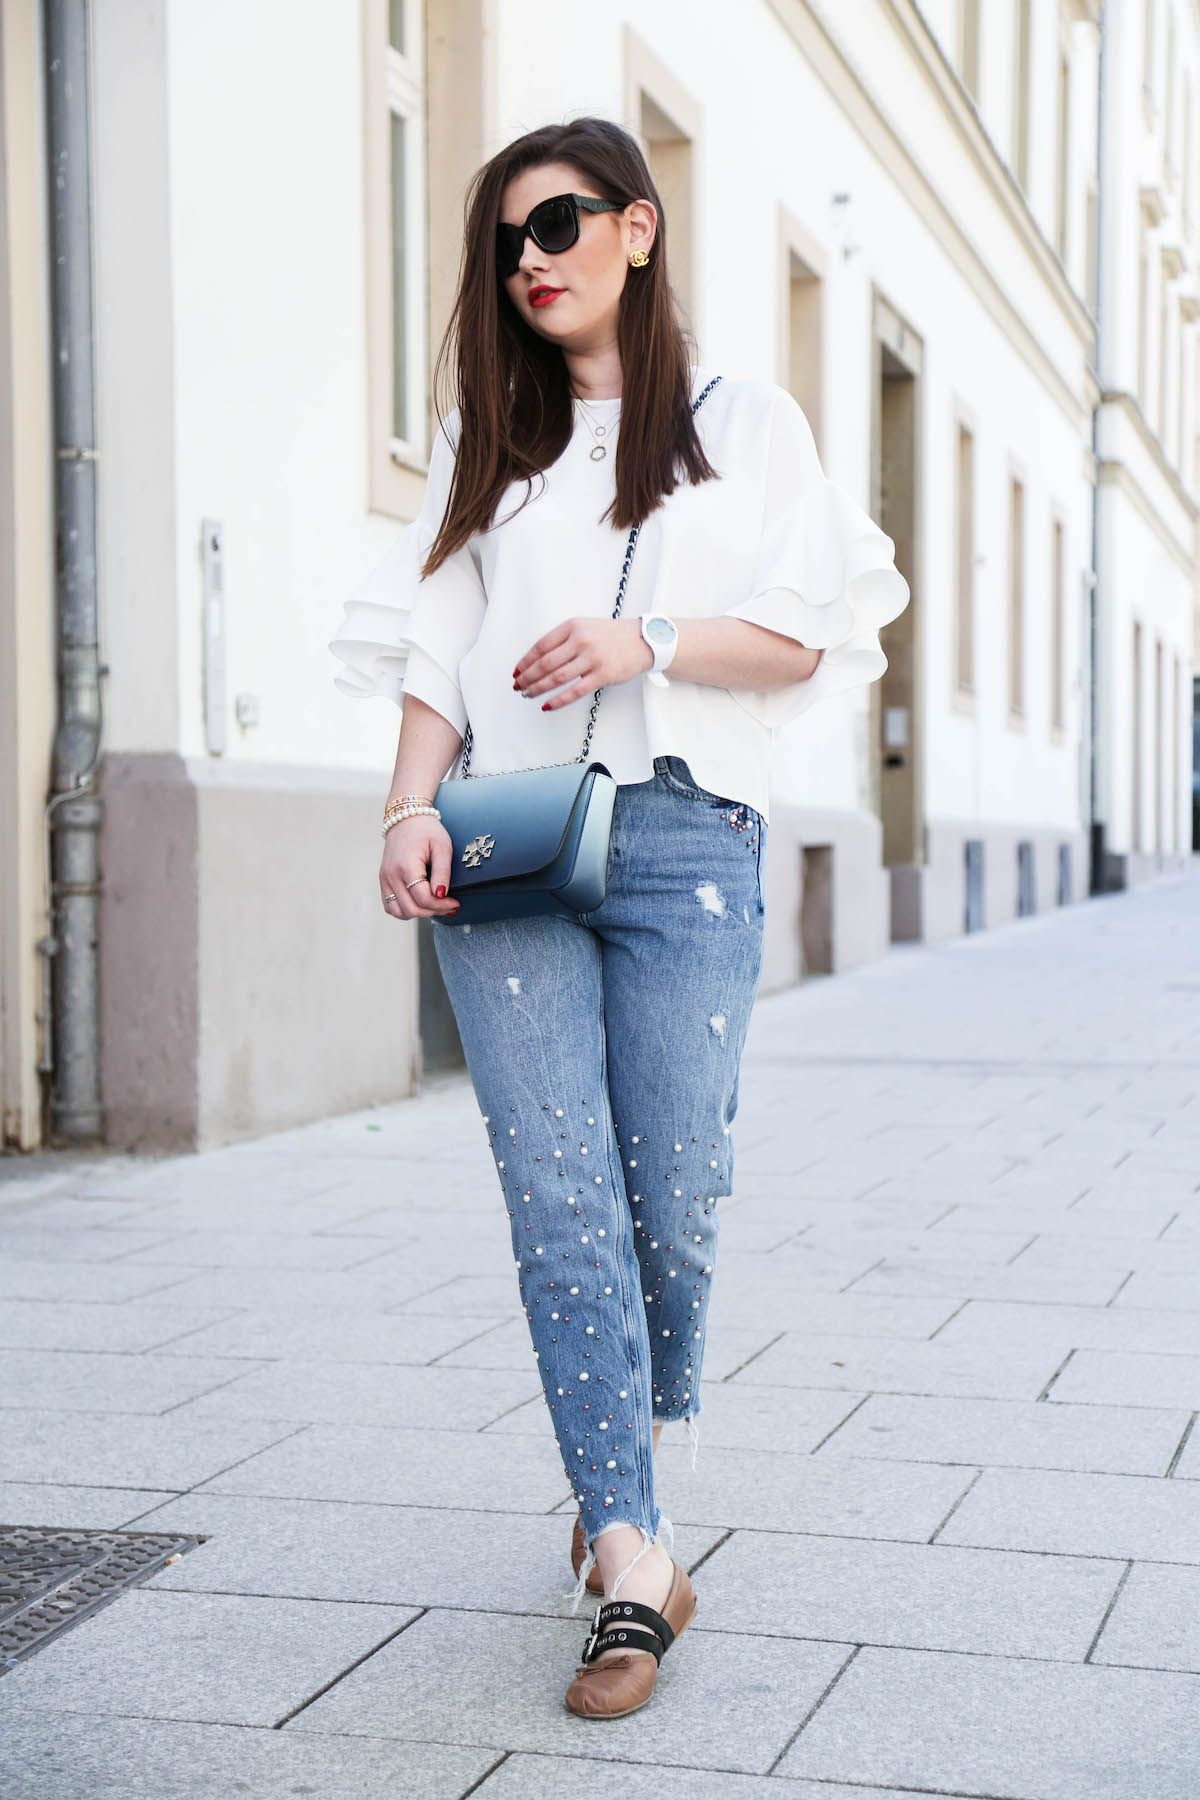 Blogger Outfit Fashion Blogger Outfit Mit Perlen Jeans Outfits Fashion